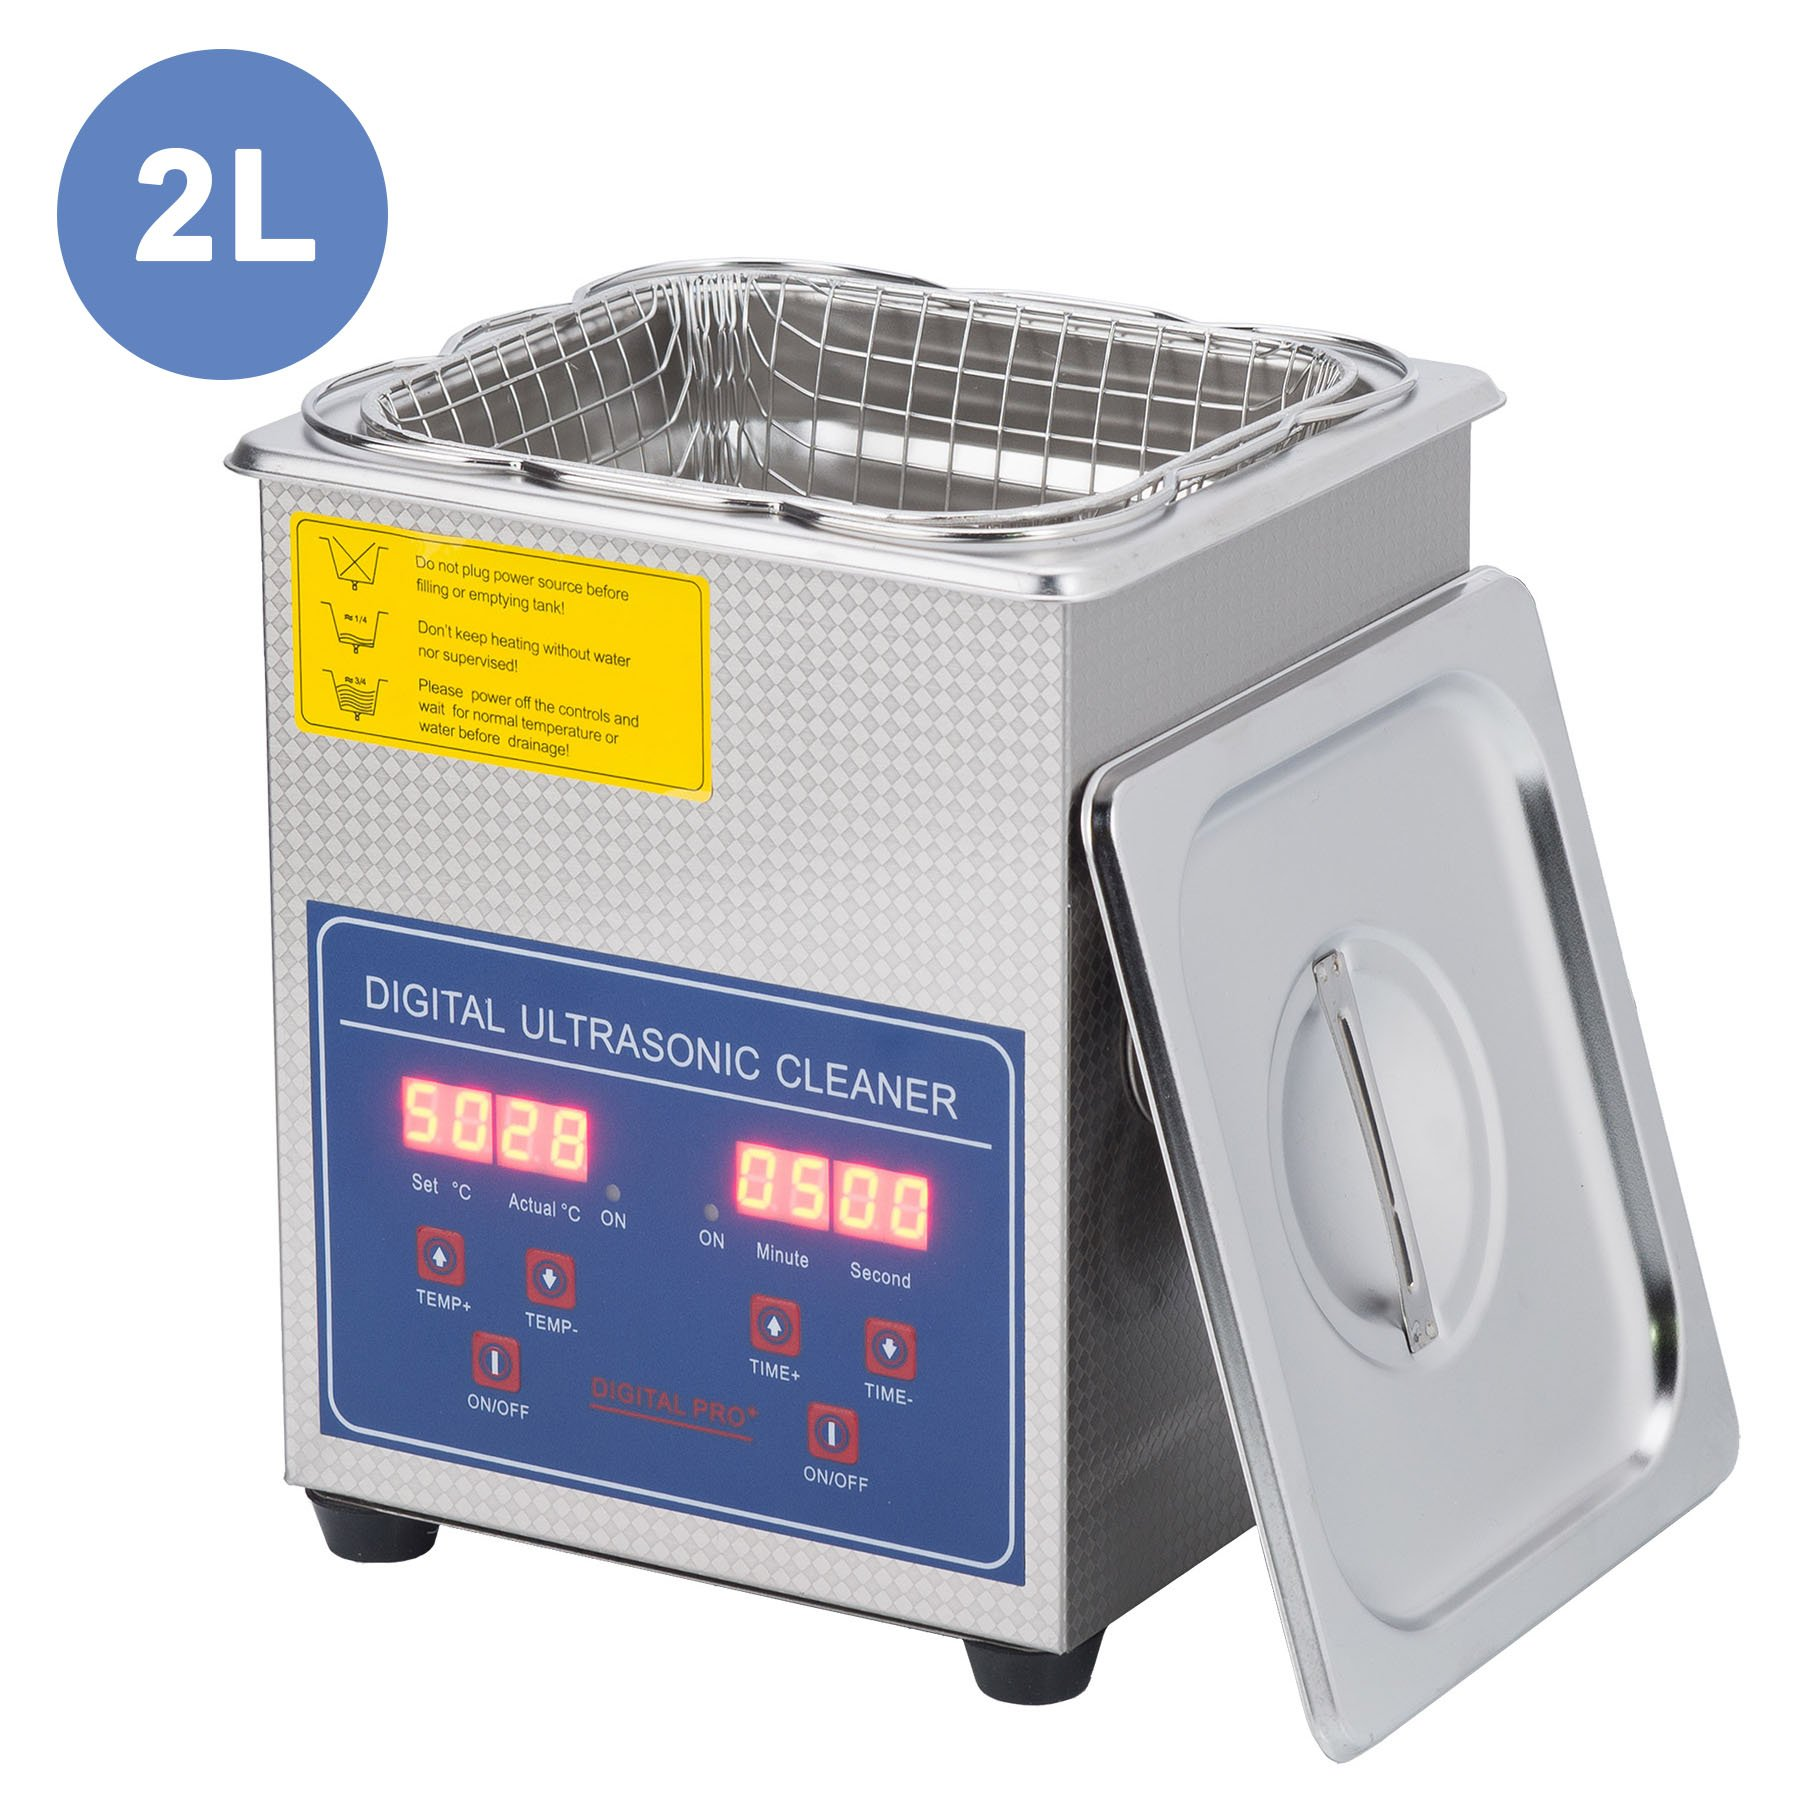 CO-Z 2L Professional Ultrasonic Cleaner with Digital Timer&Heater for Cleaning Jewelry Glasses Watch Dentures Small Parts Circuit Board Dental Instrument, Commercial Electric Ultrasound Clean Machine